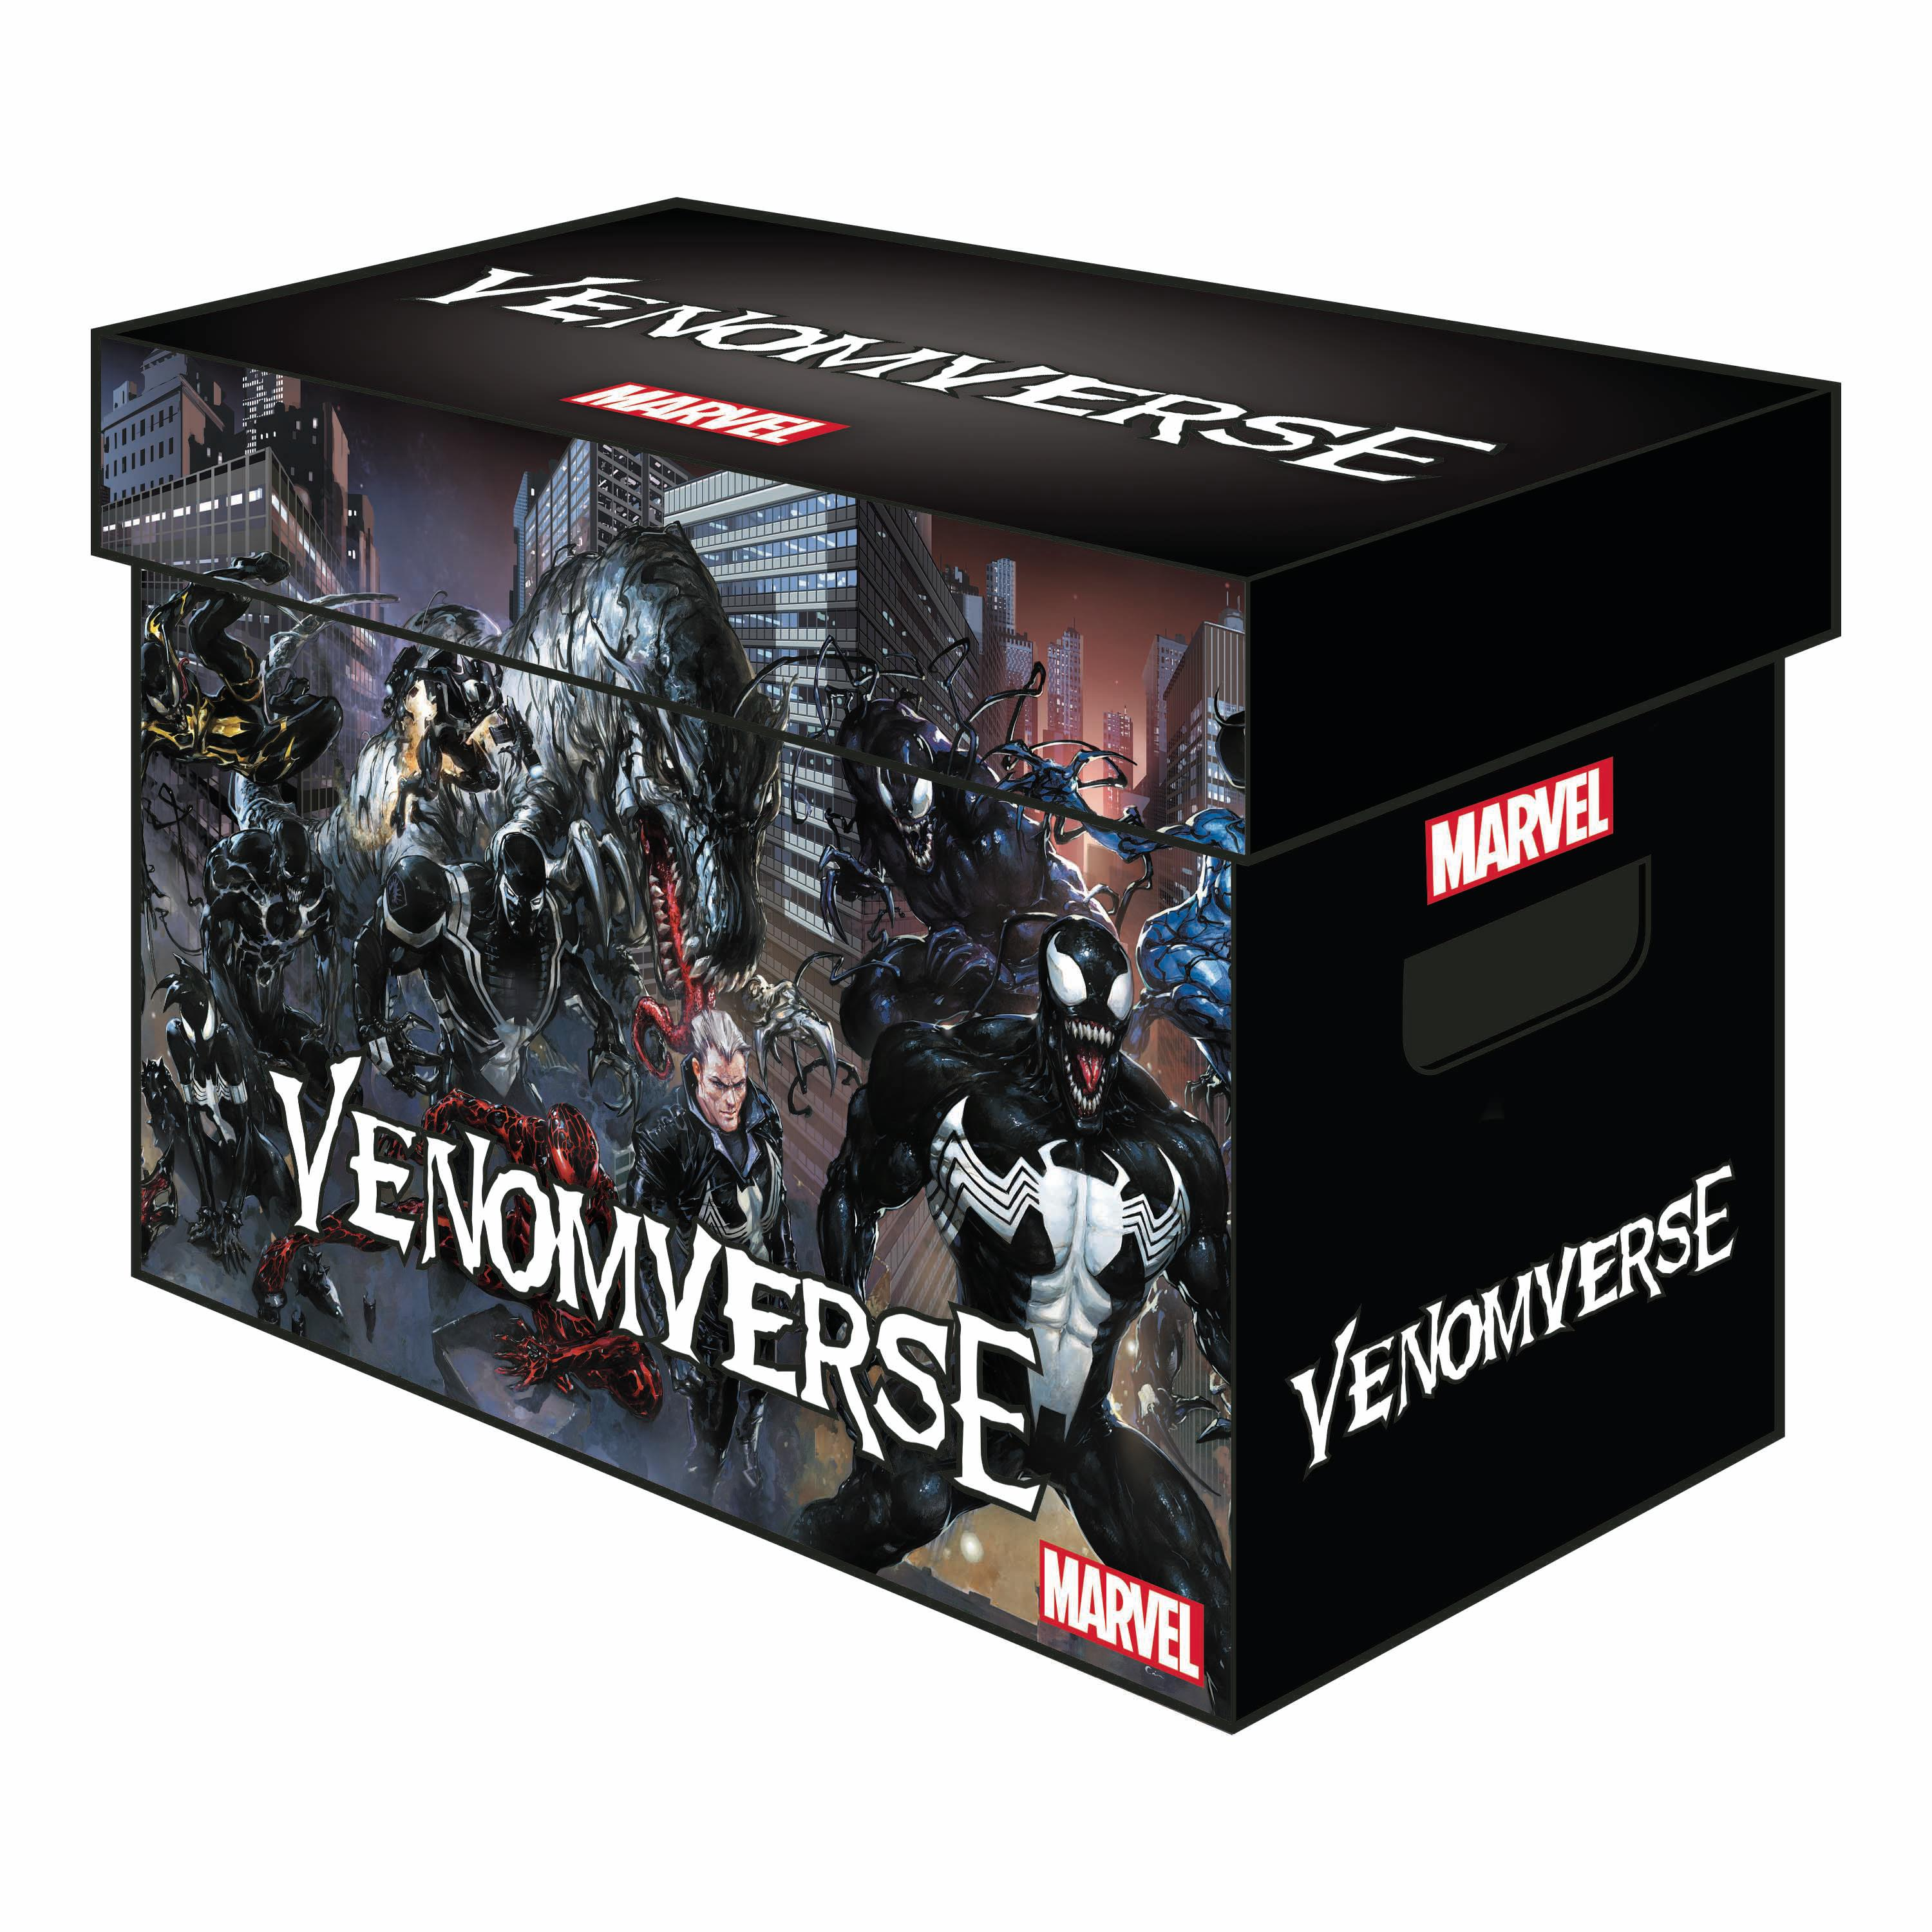 Caja Marvel Graphic Comic Boxes Venomverse | N1117-MERCH02 | Marvel Comics | Terra de Còmic - Tu tienda de cómics online especializada en cómics, manga y merchandising